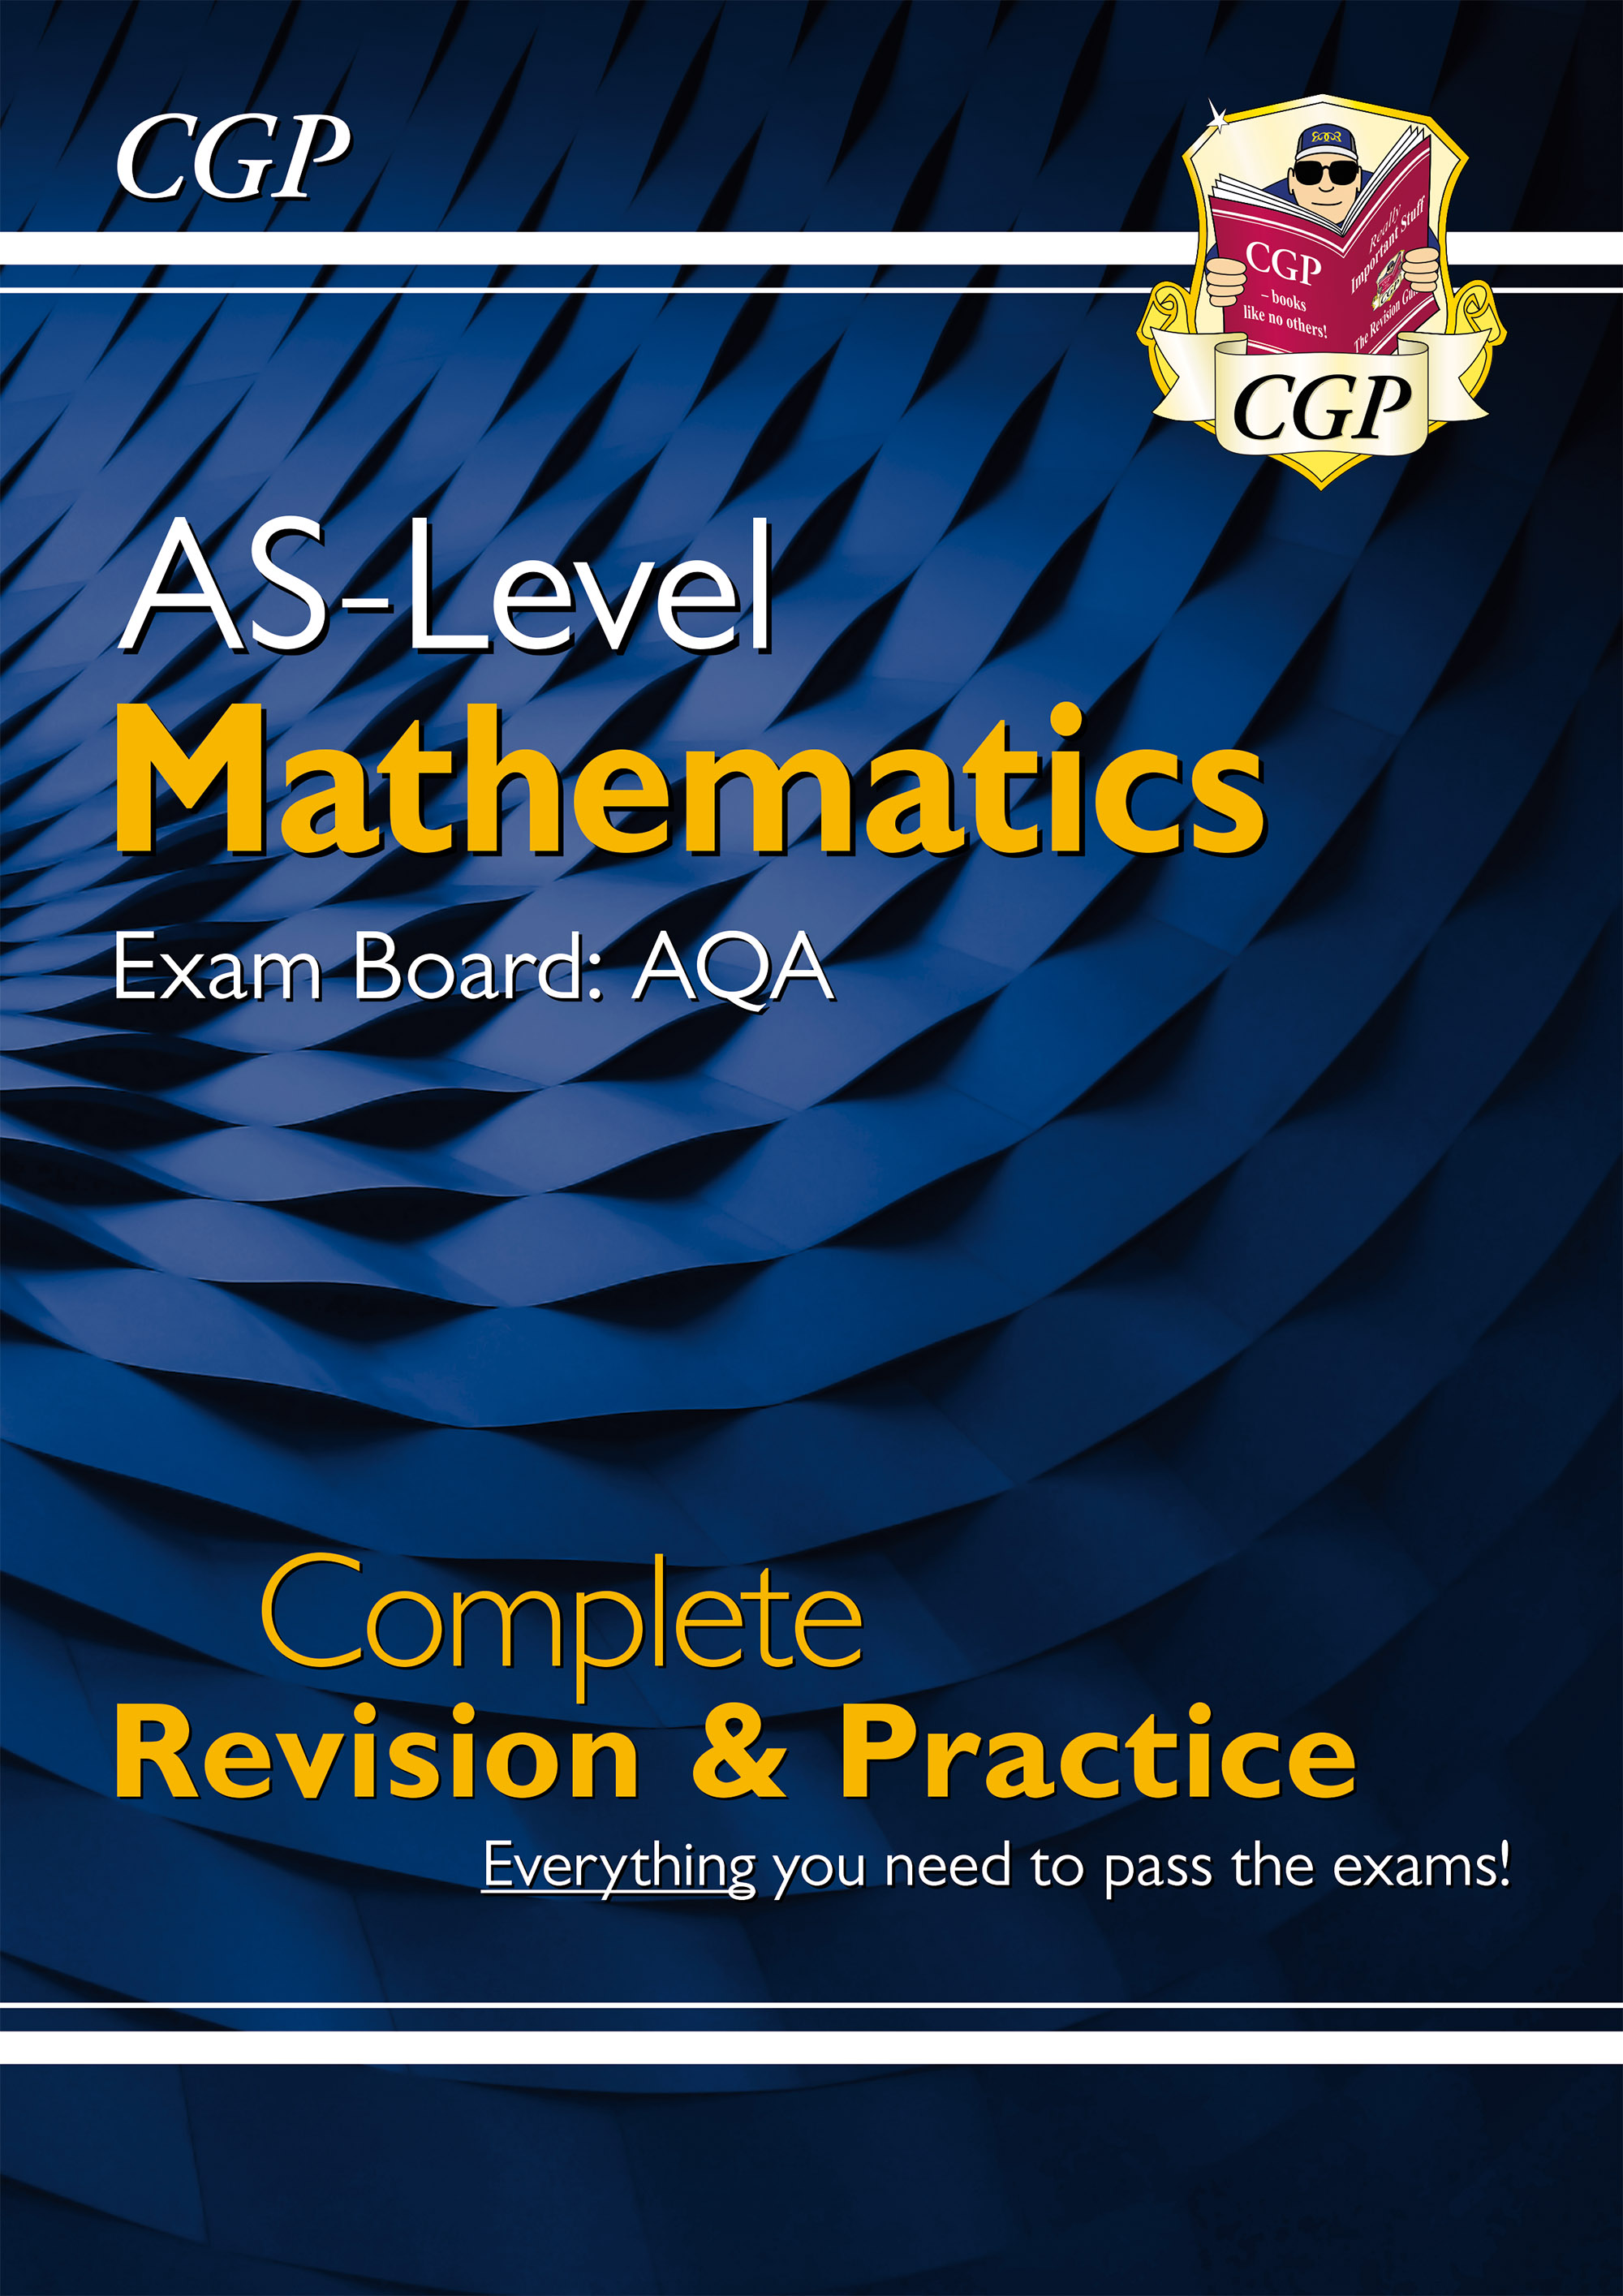 MAHR52DK - New A-Level Maths for AQA: Year 1 & AS Complete Revision & Practice